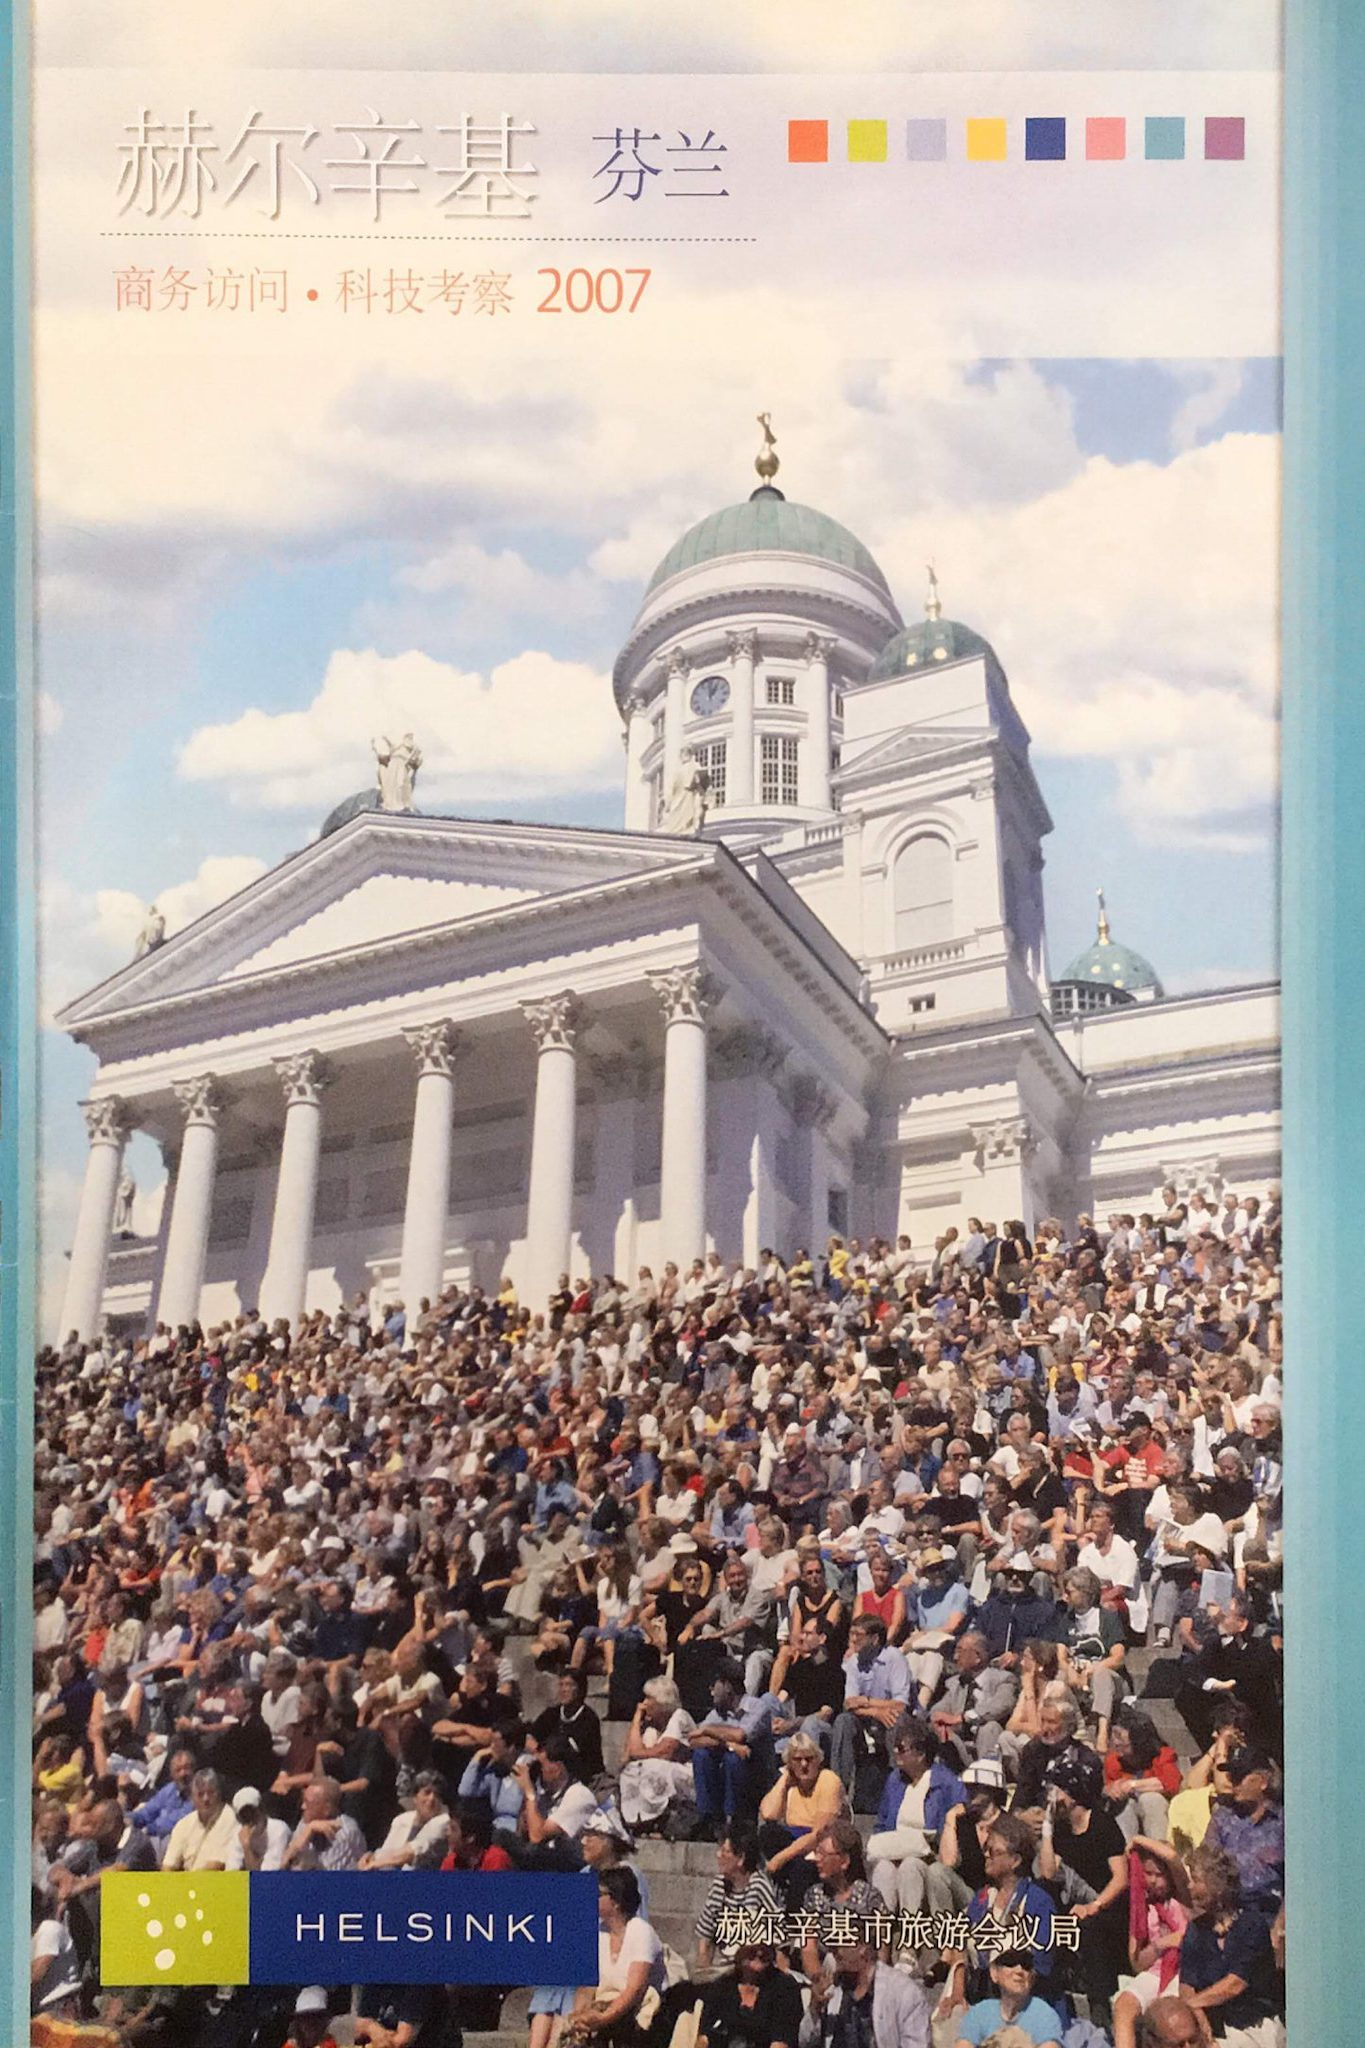 tekway-helsinki-city-travel-guide-11-e1585126155691-1446x2048